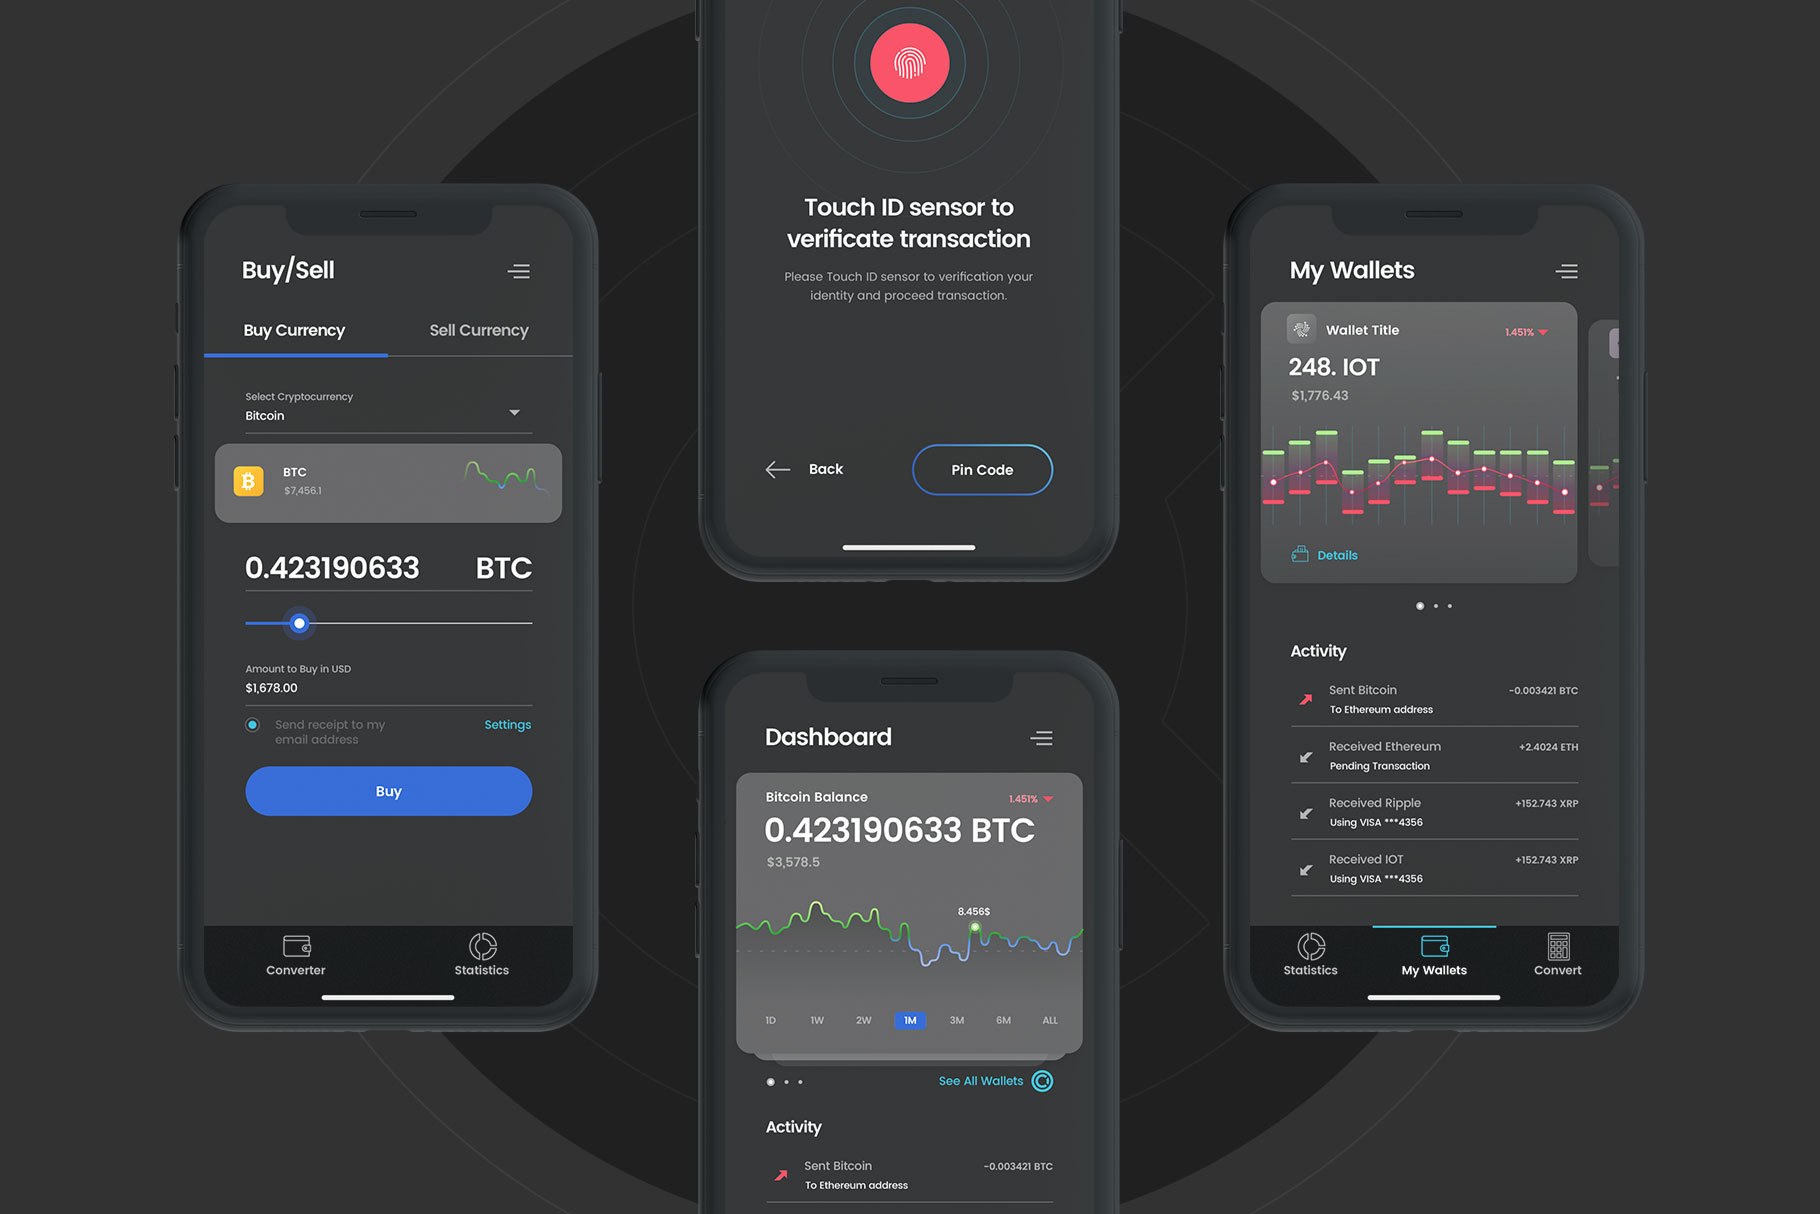 CryptoCamp Mobile UI Kit